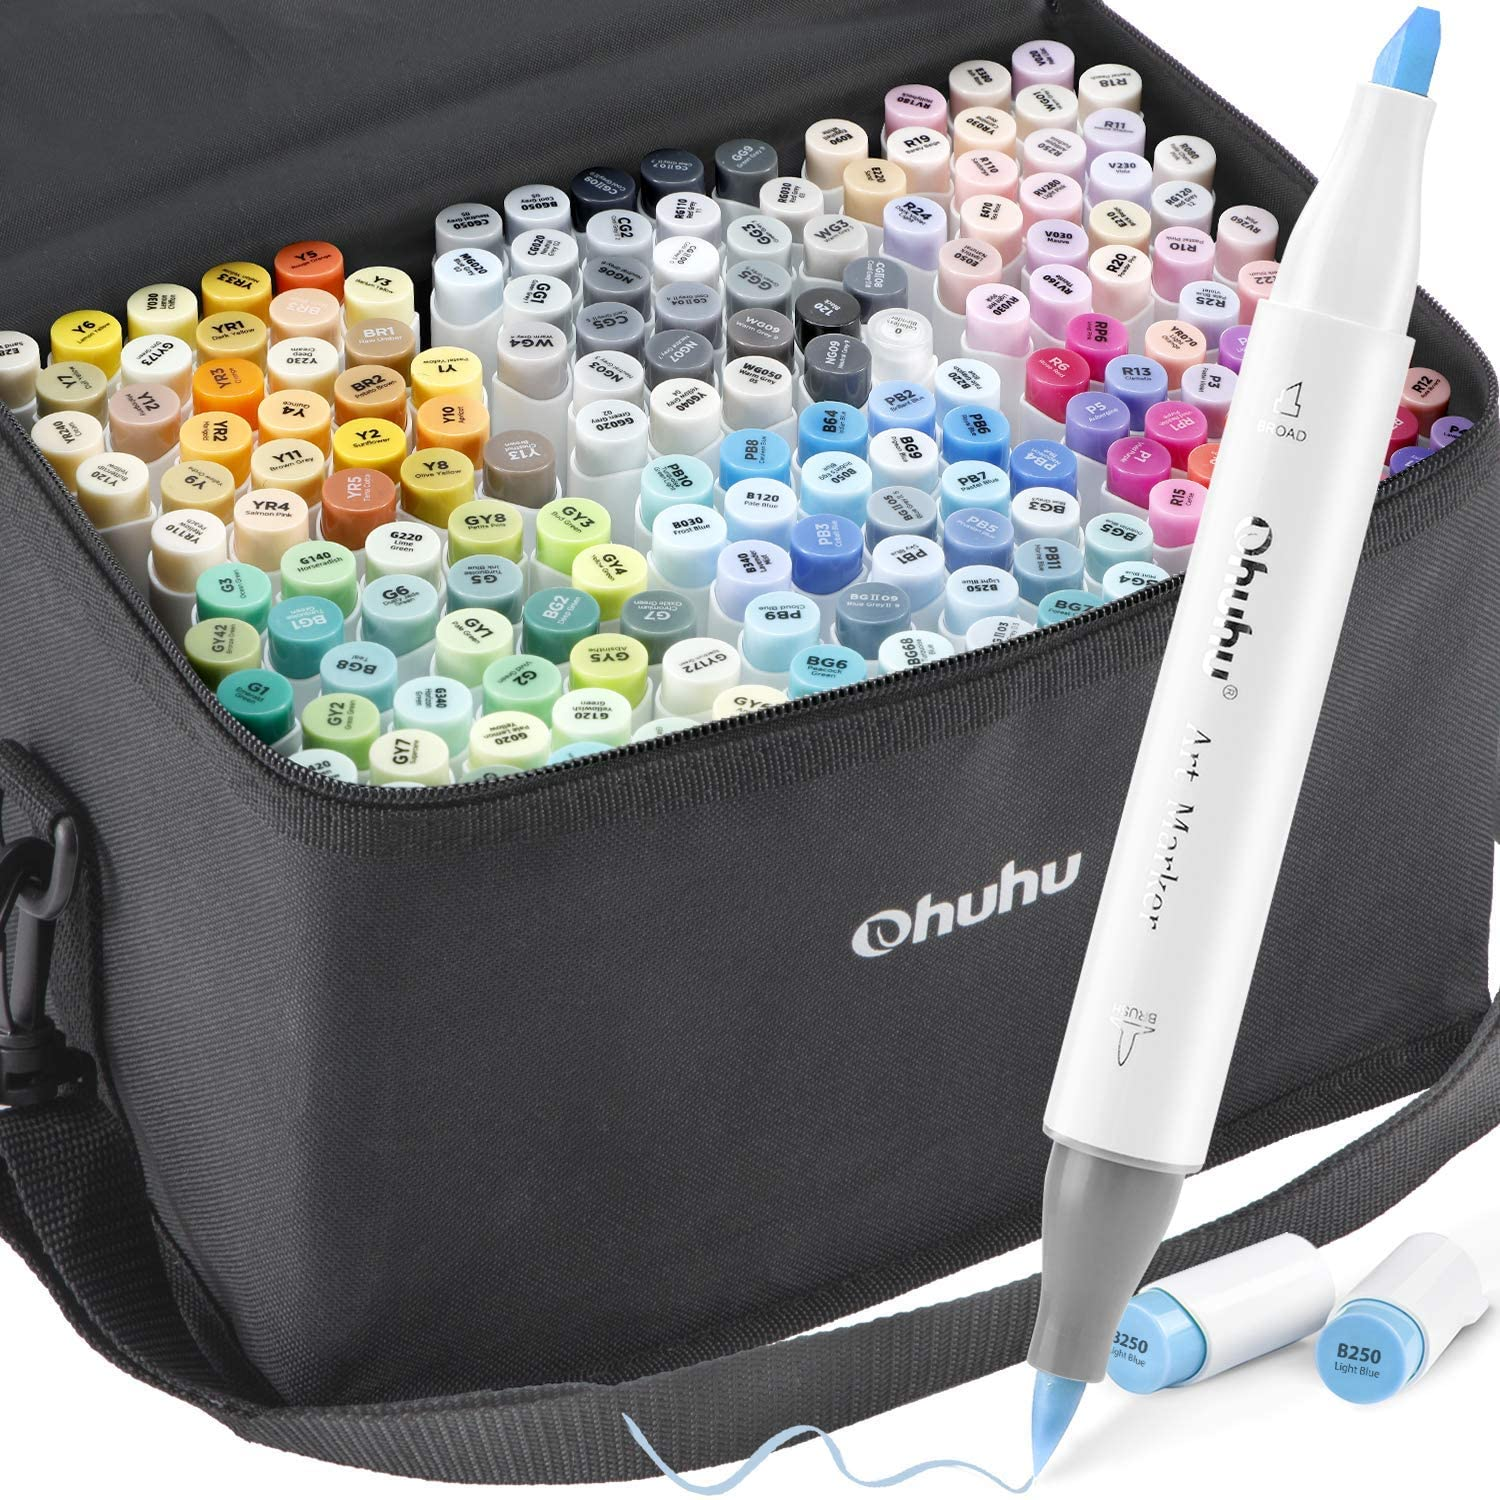 168-Color Alcohol Art Markers Set, Ohuhu Dual Tip, Brush & Chisel, Sketch Marker, Alcohol-based Brush Markers, Comes w/ 1 Blender for Sketching, Adult Coloring, and Illustration -Honolulu Series